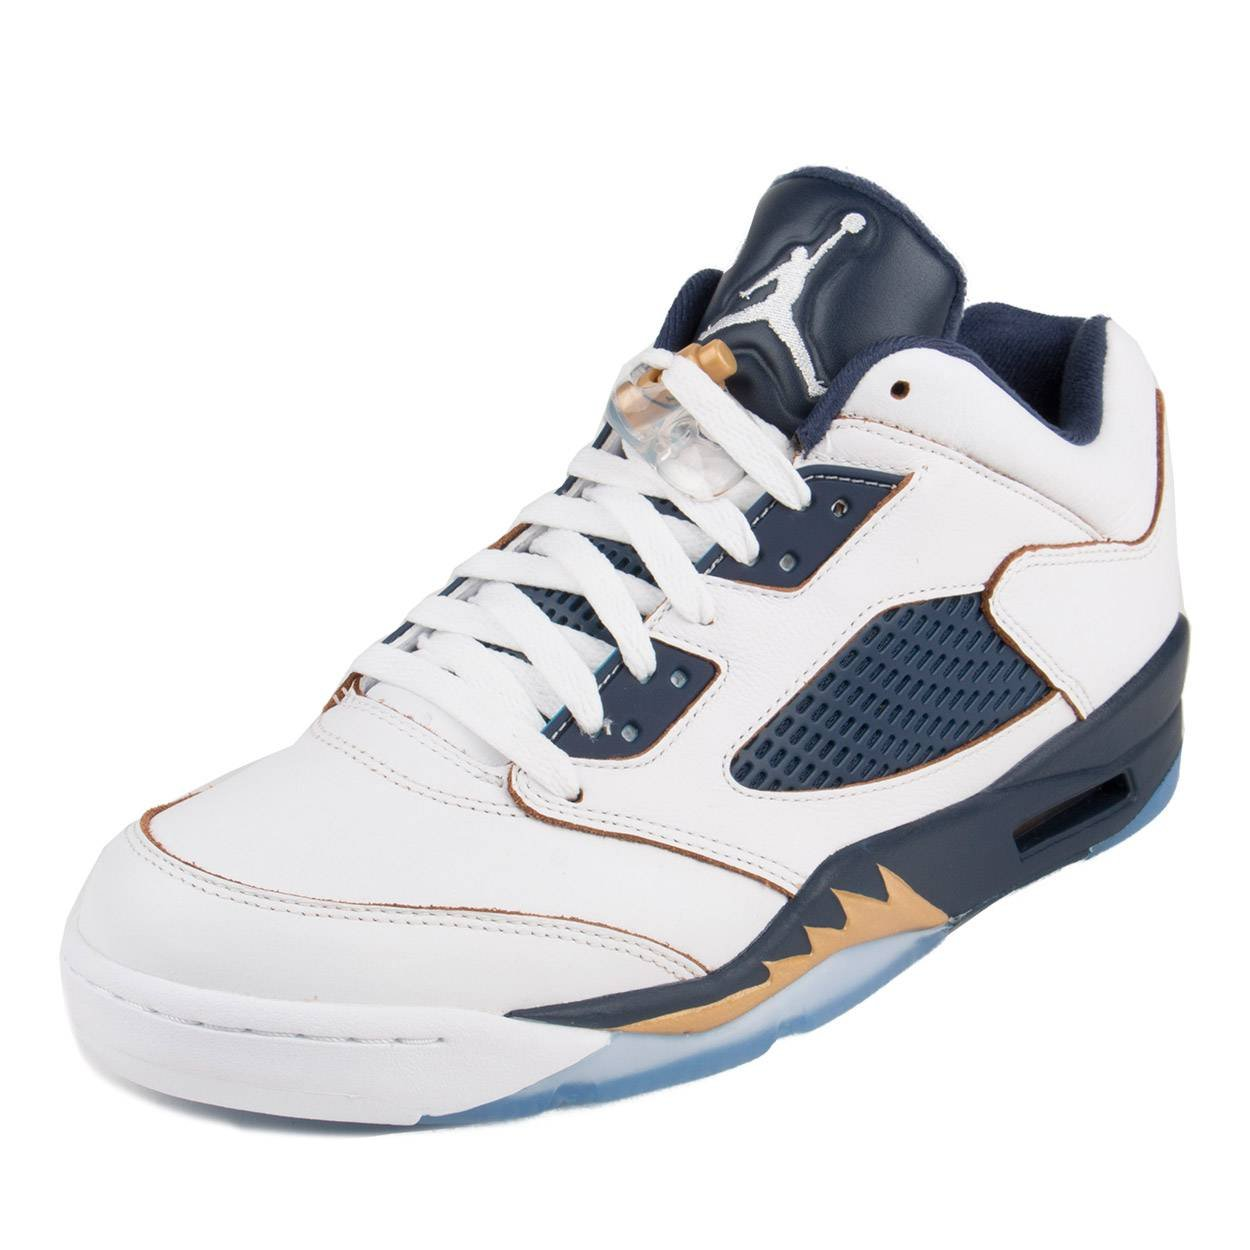 the latest 12779 81481 Nike Mens Air Jordan 5 Retro Low Dunk from Above White/Metallic  Gold-Midnight Navy Leather Size 12